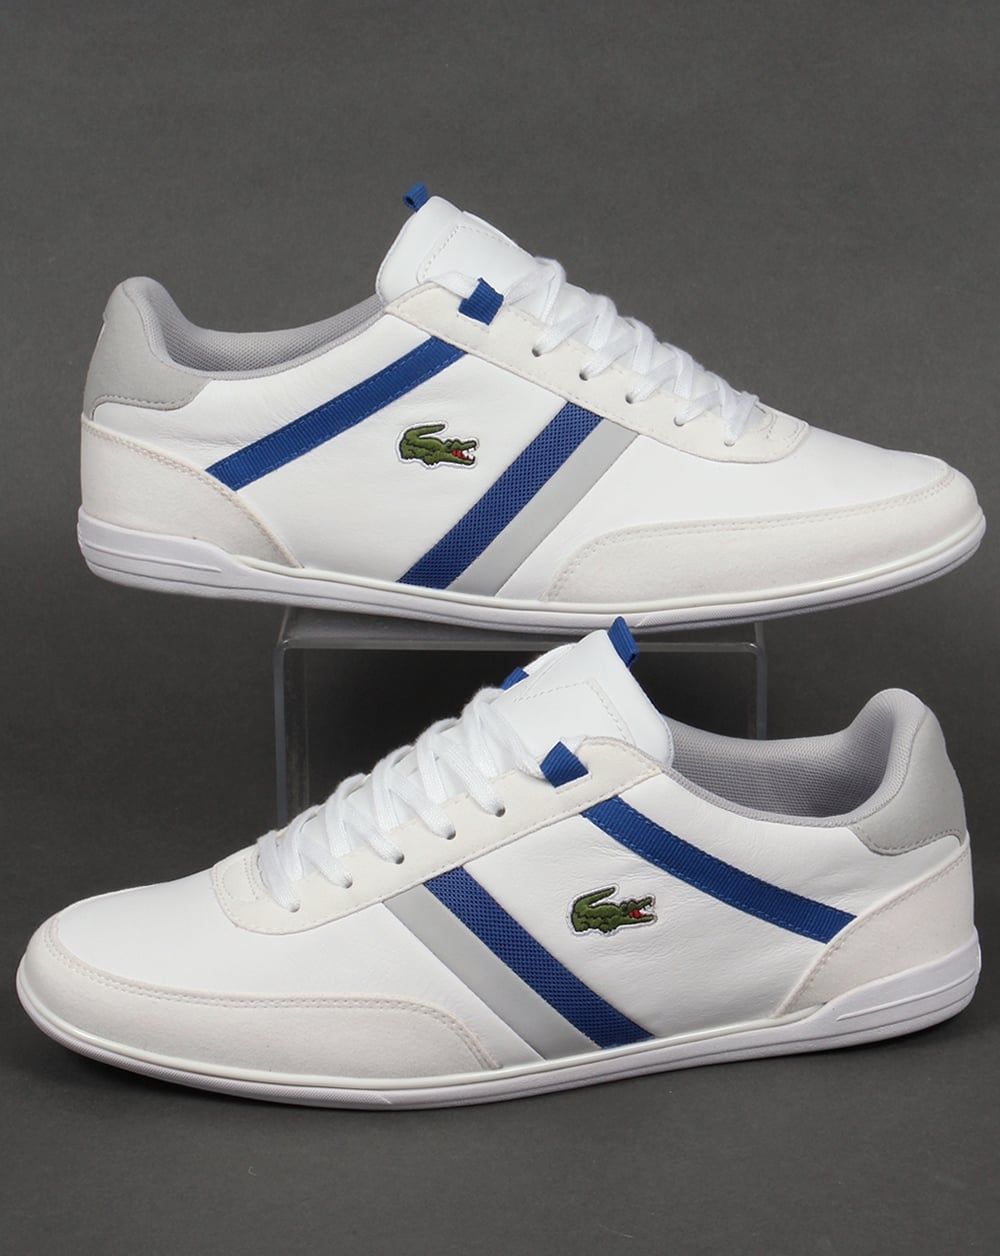 meet new arrival super specials Lacoste Giron Trainers White/Royal,shoes,mens